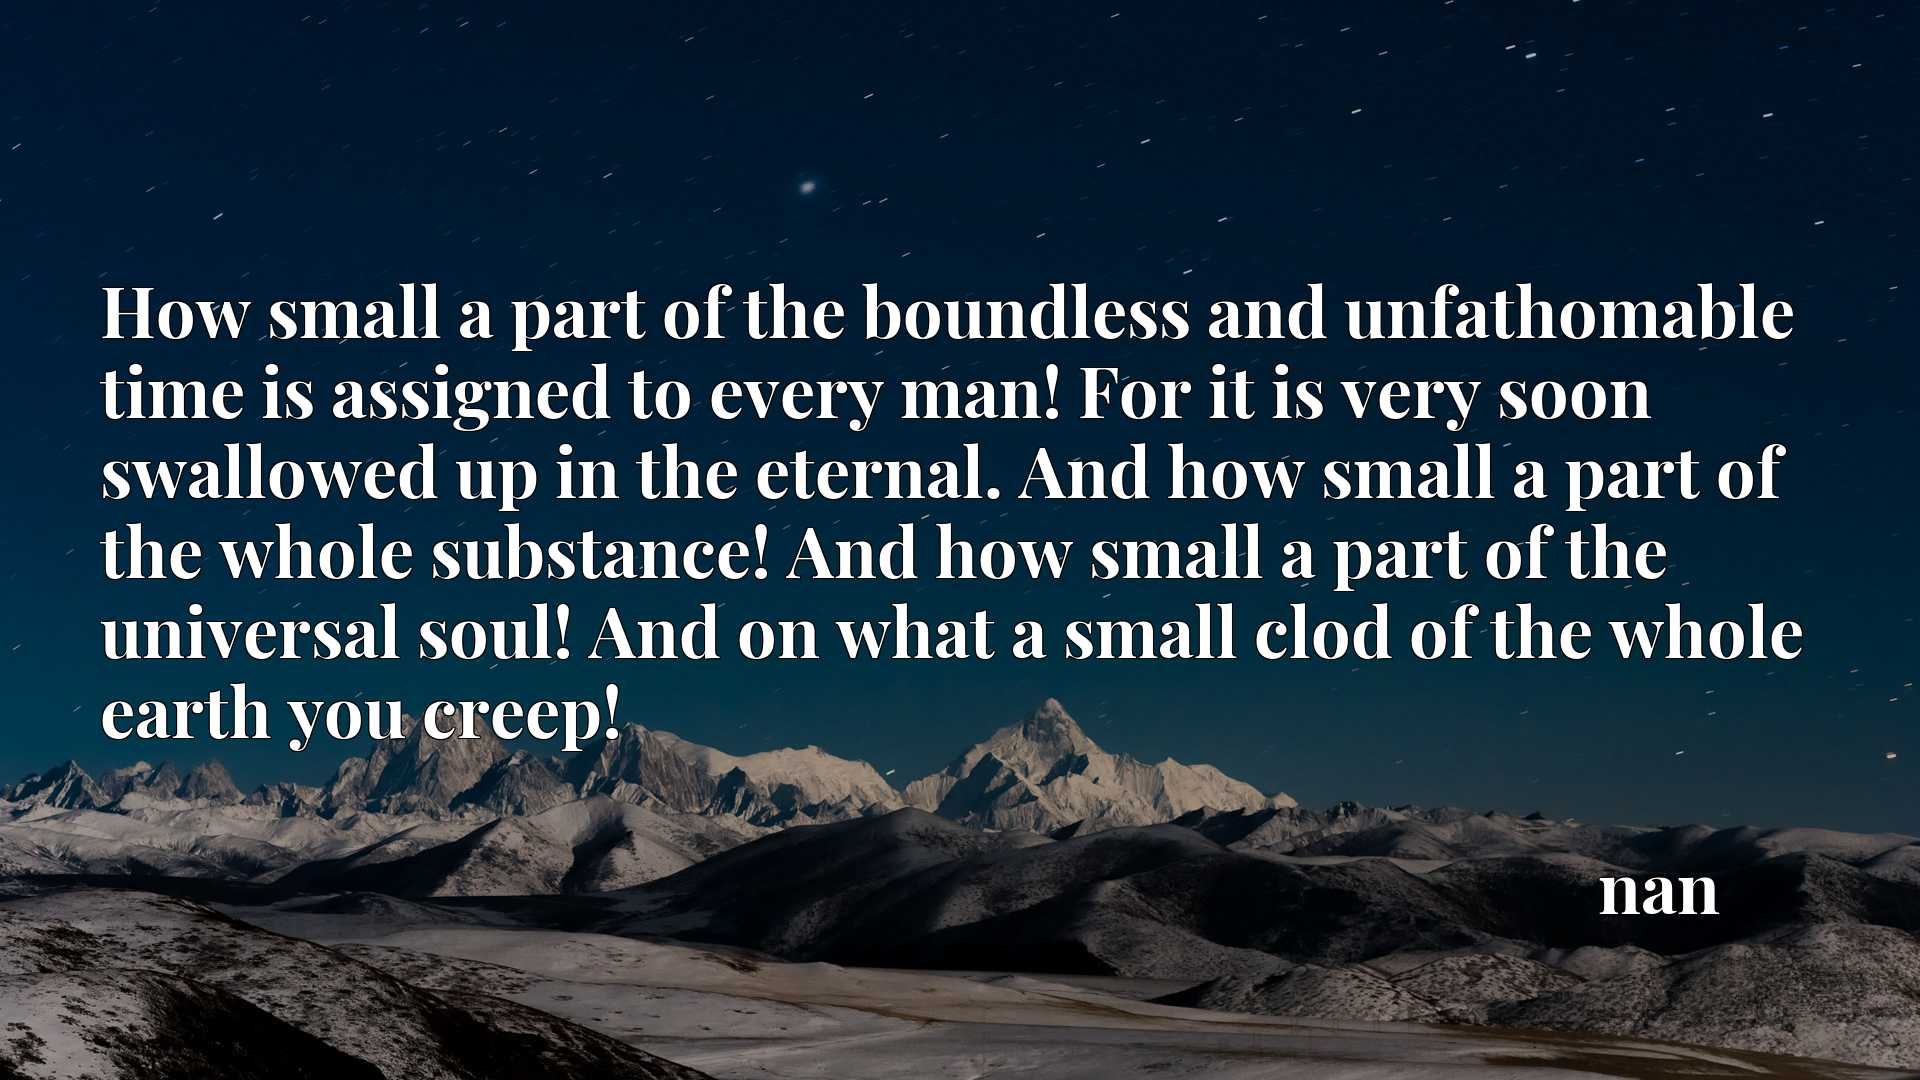 How small a part of the boundless and unfathomable time is assigned to every man! For it is very soon swallowed up in the eternal. And how small a part of the whole substance! And how small a part of the universal soul! And on what a small clod of the whole earth you creep!